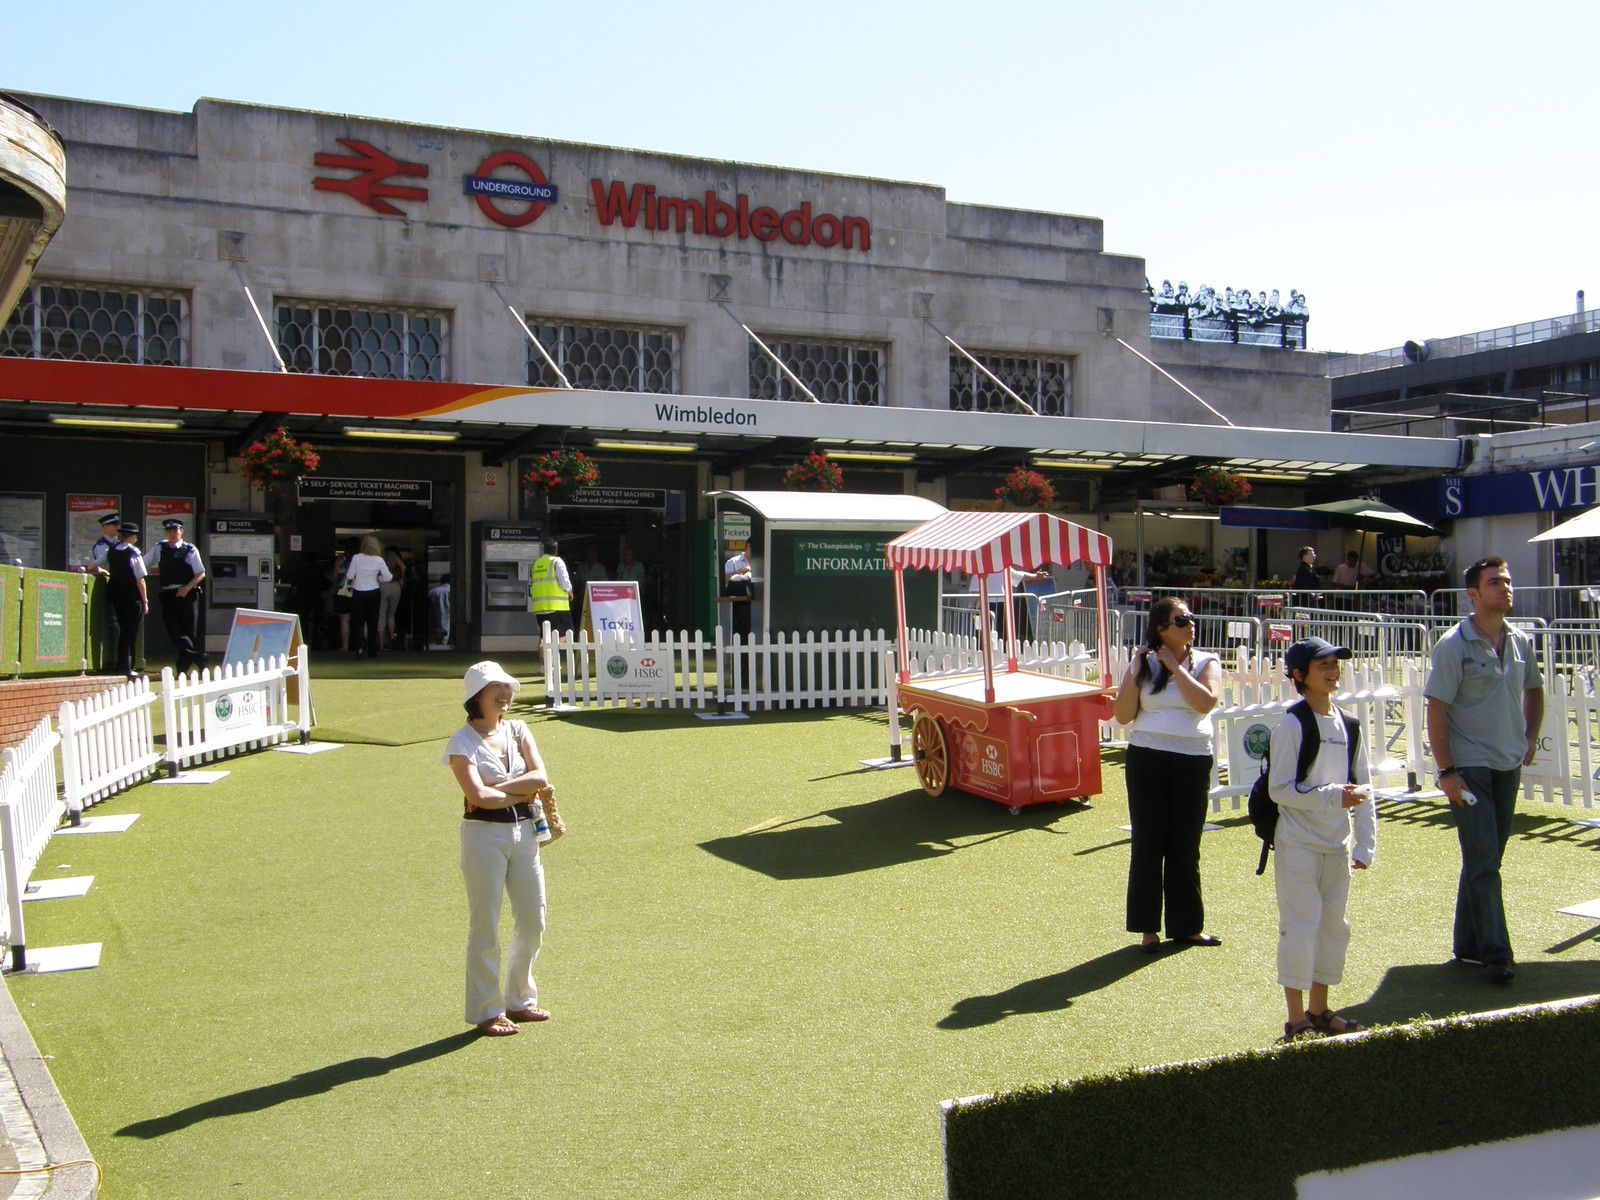 Image from Wimbledon to Edgware Road